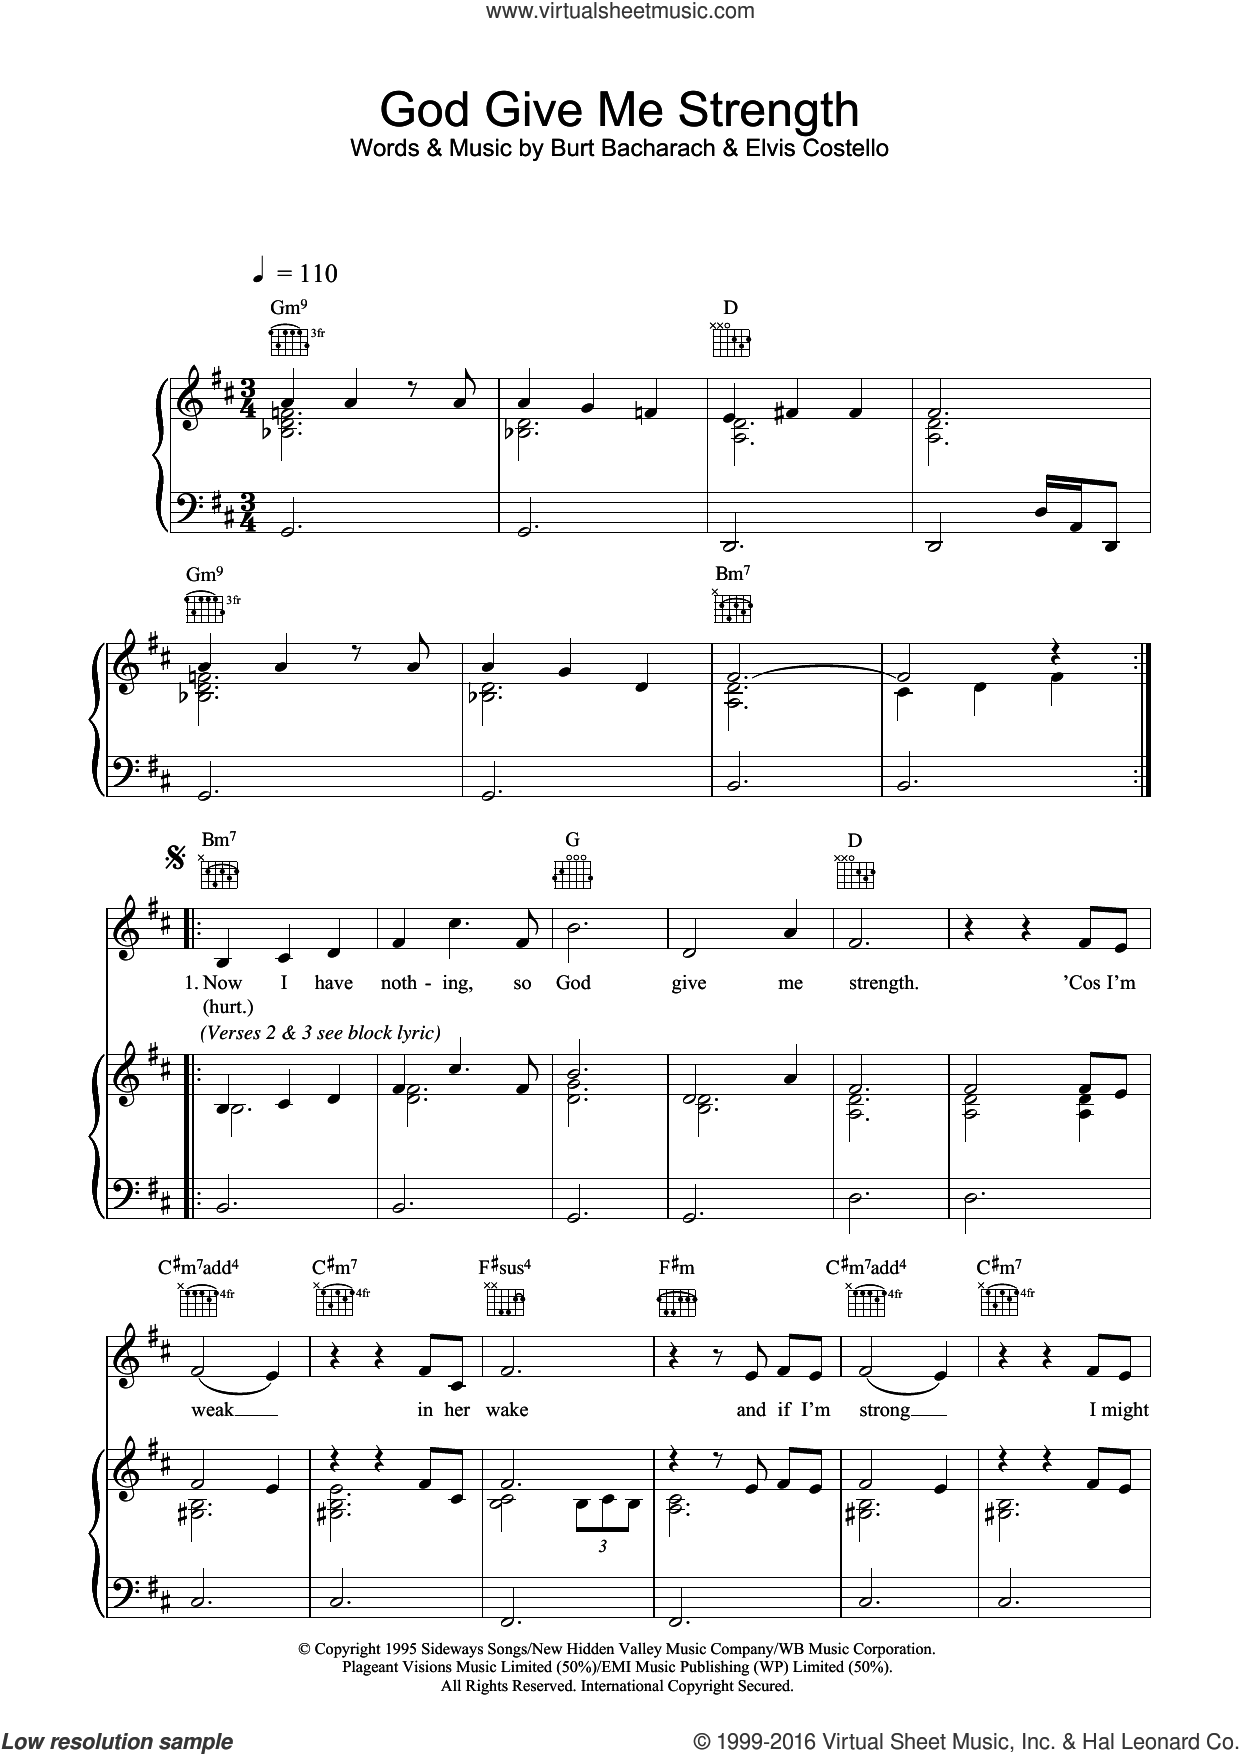 God Give Me Strength sheet music for voice, piano or guitar by Elvis Costello and Burt Bacharach. Score Image Preview.